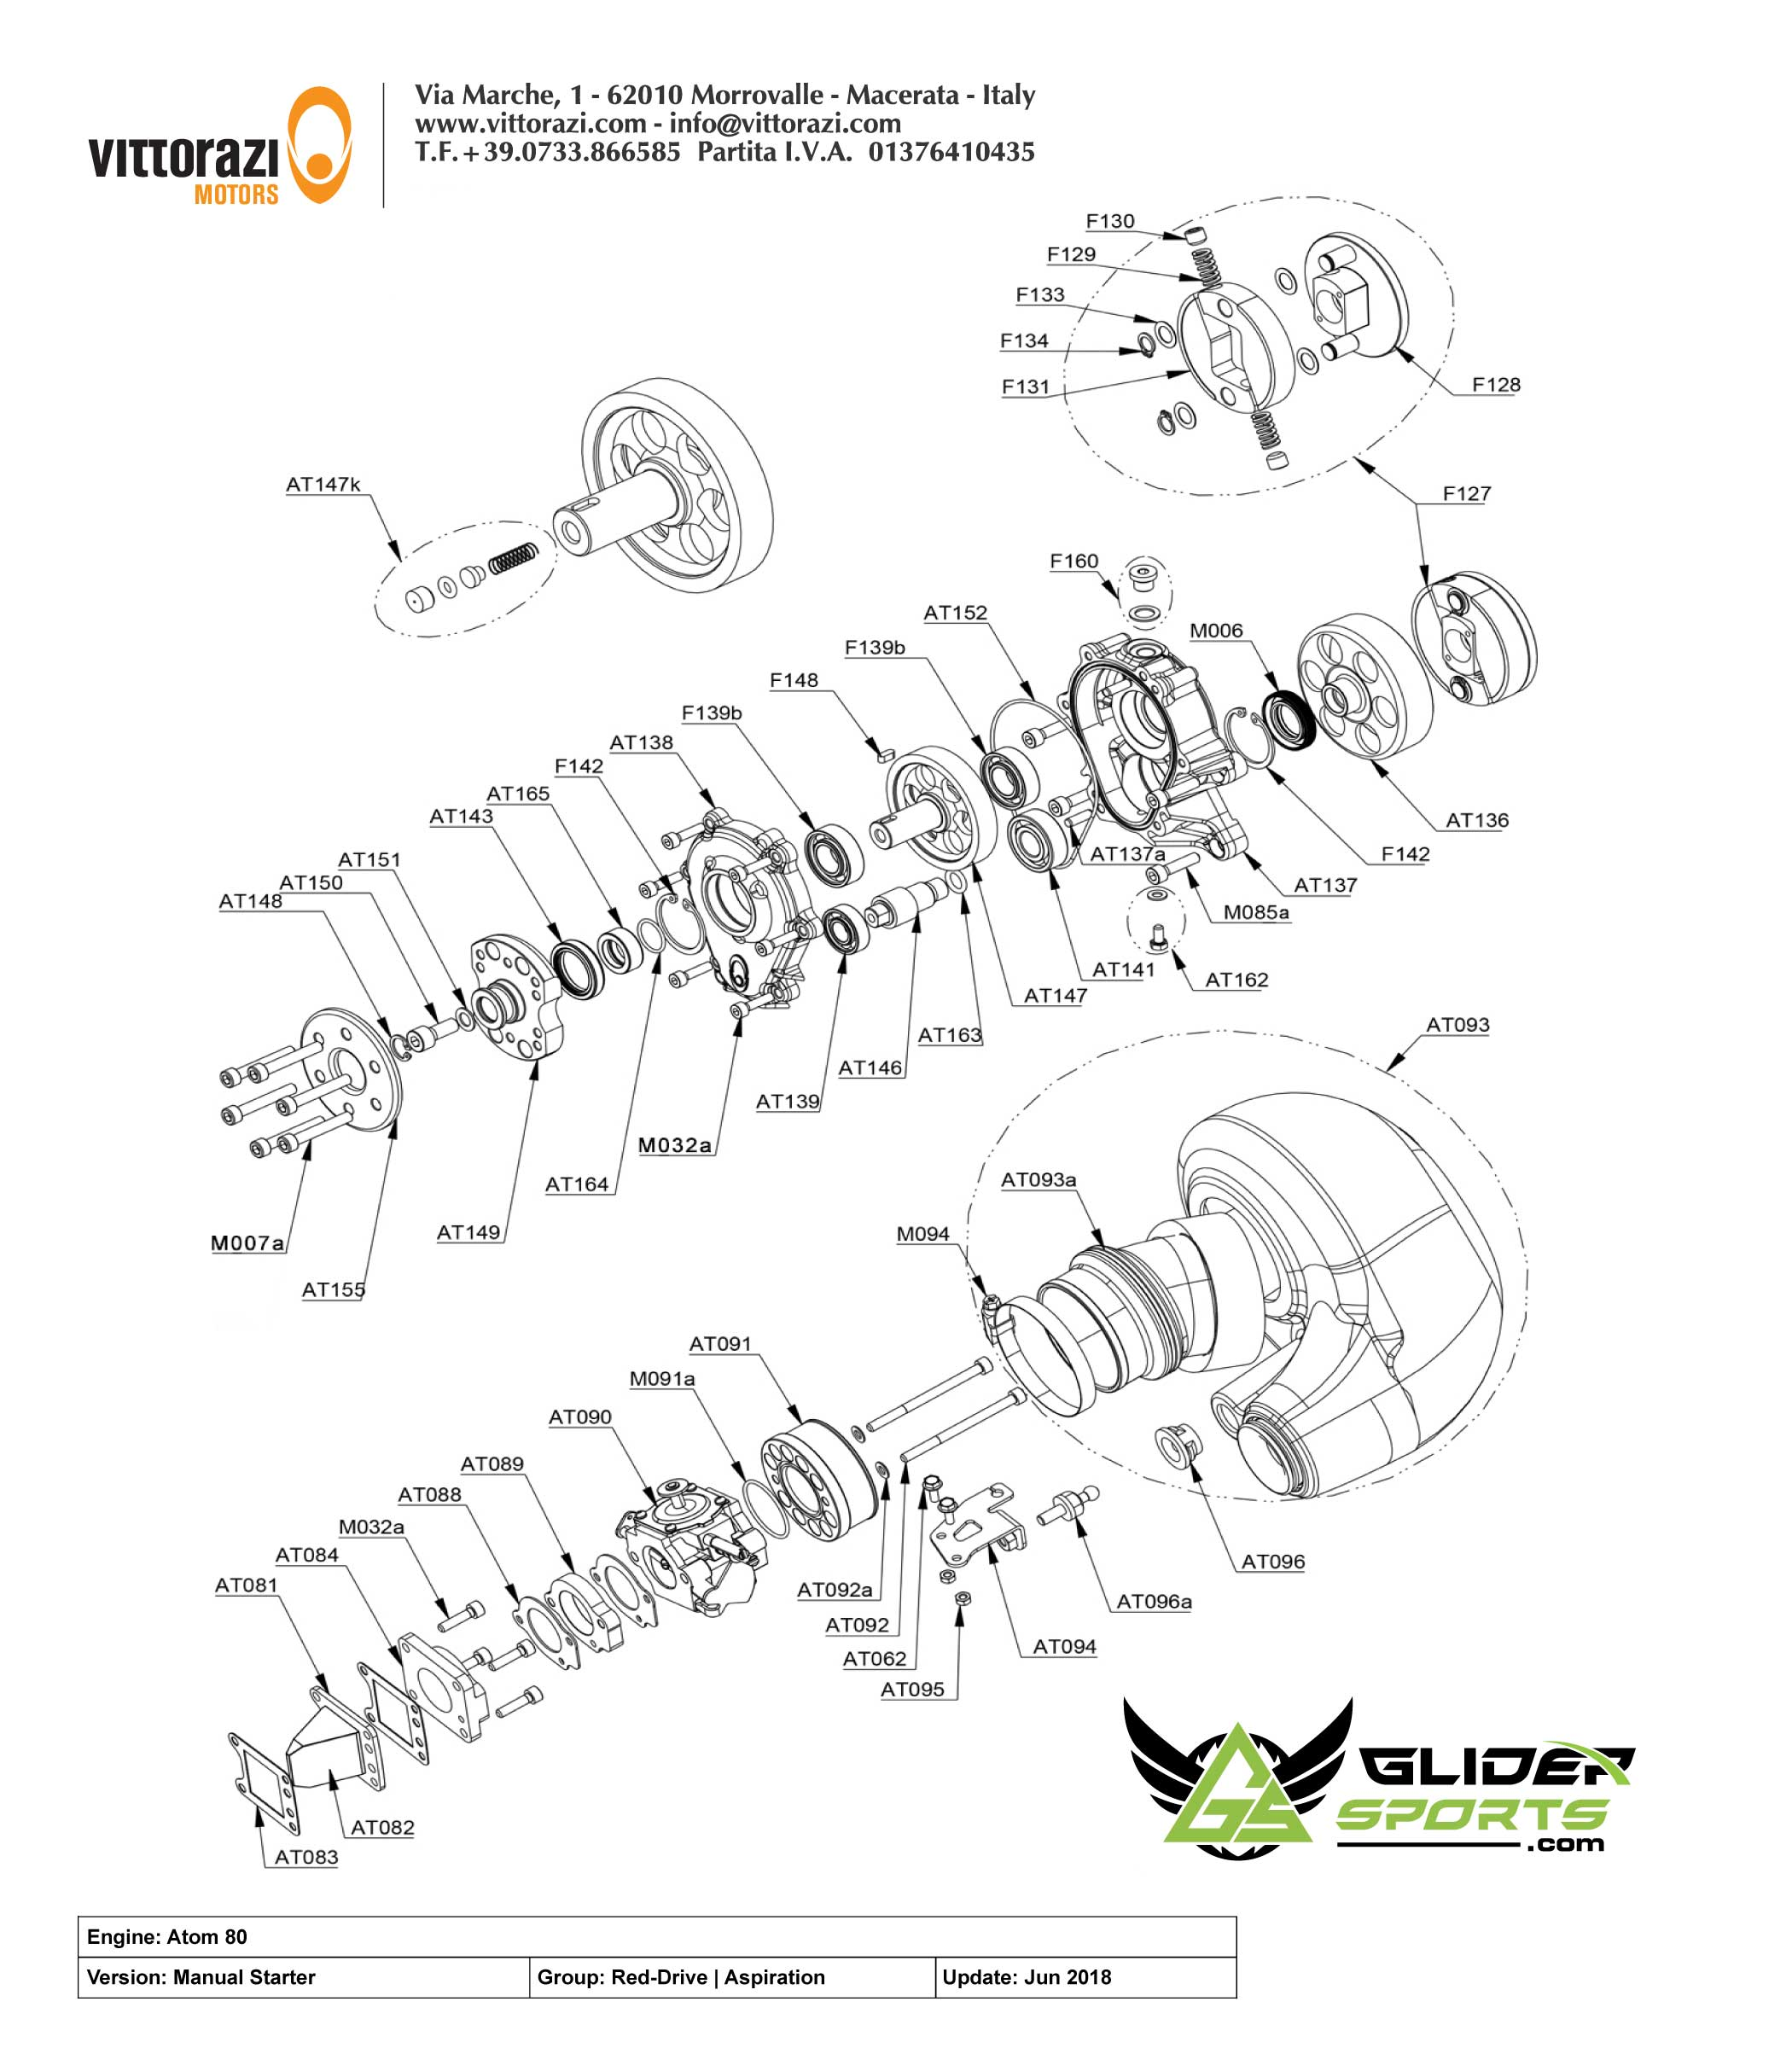 AT090 - Carburetor Walbro for Atom80 | Vittorazi Atom 80